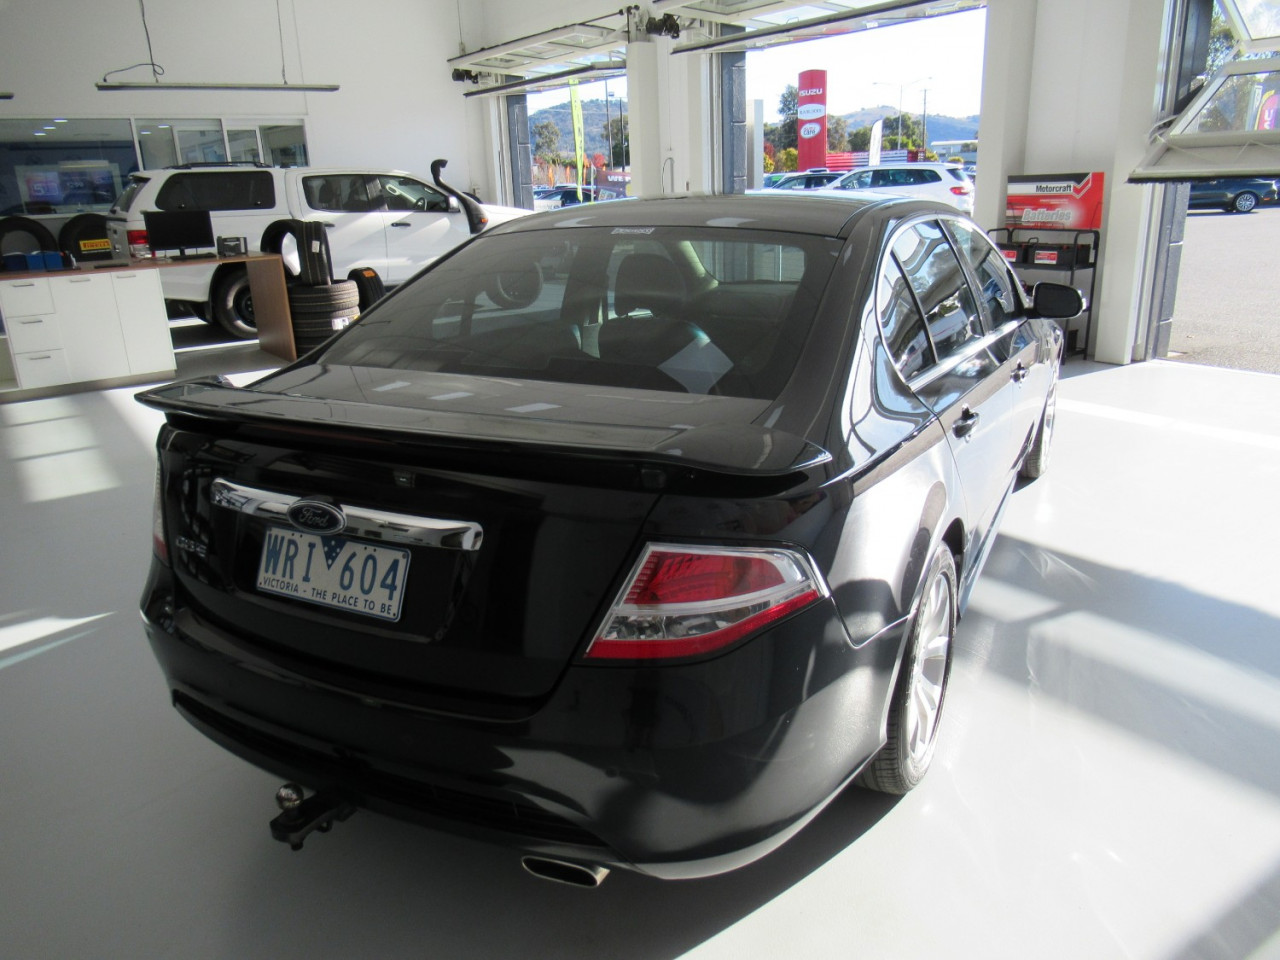 2008 Ford G6 Series FG G6E Sedan Image 6